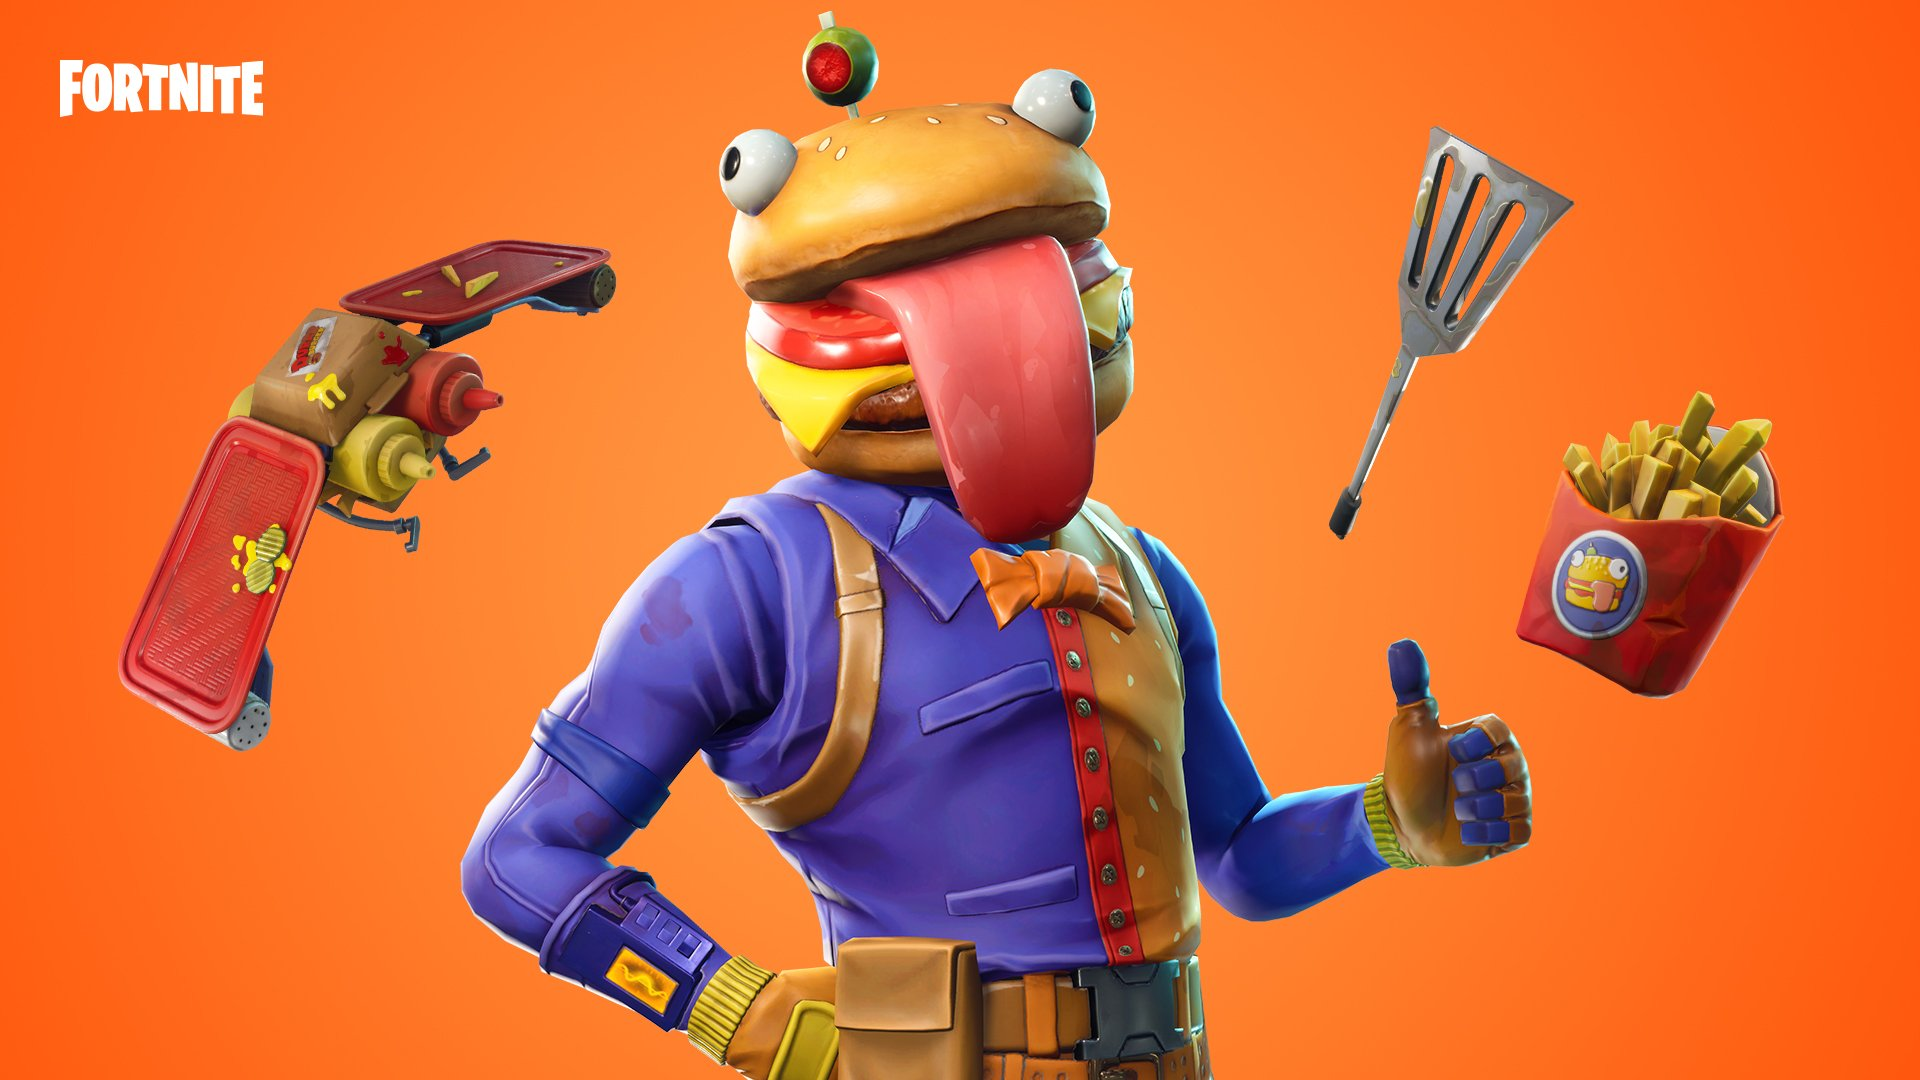 Fortnite On Twitter Quot The Beef Boss Has The Best Buns In